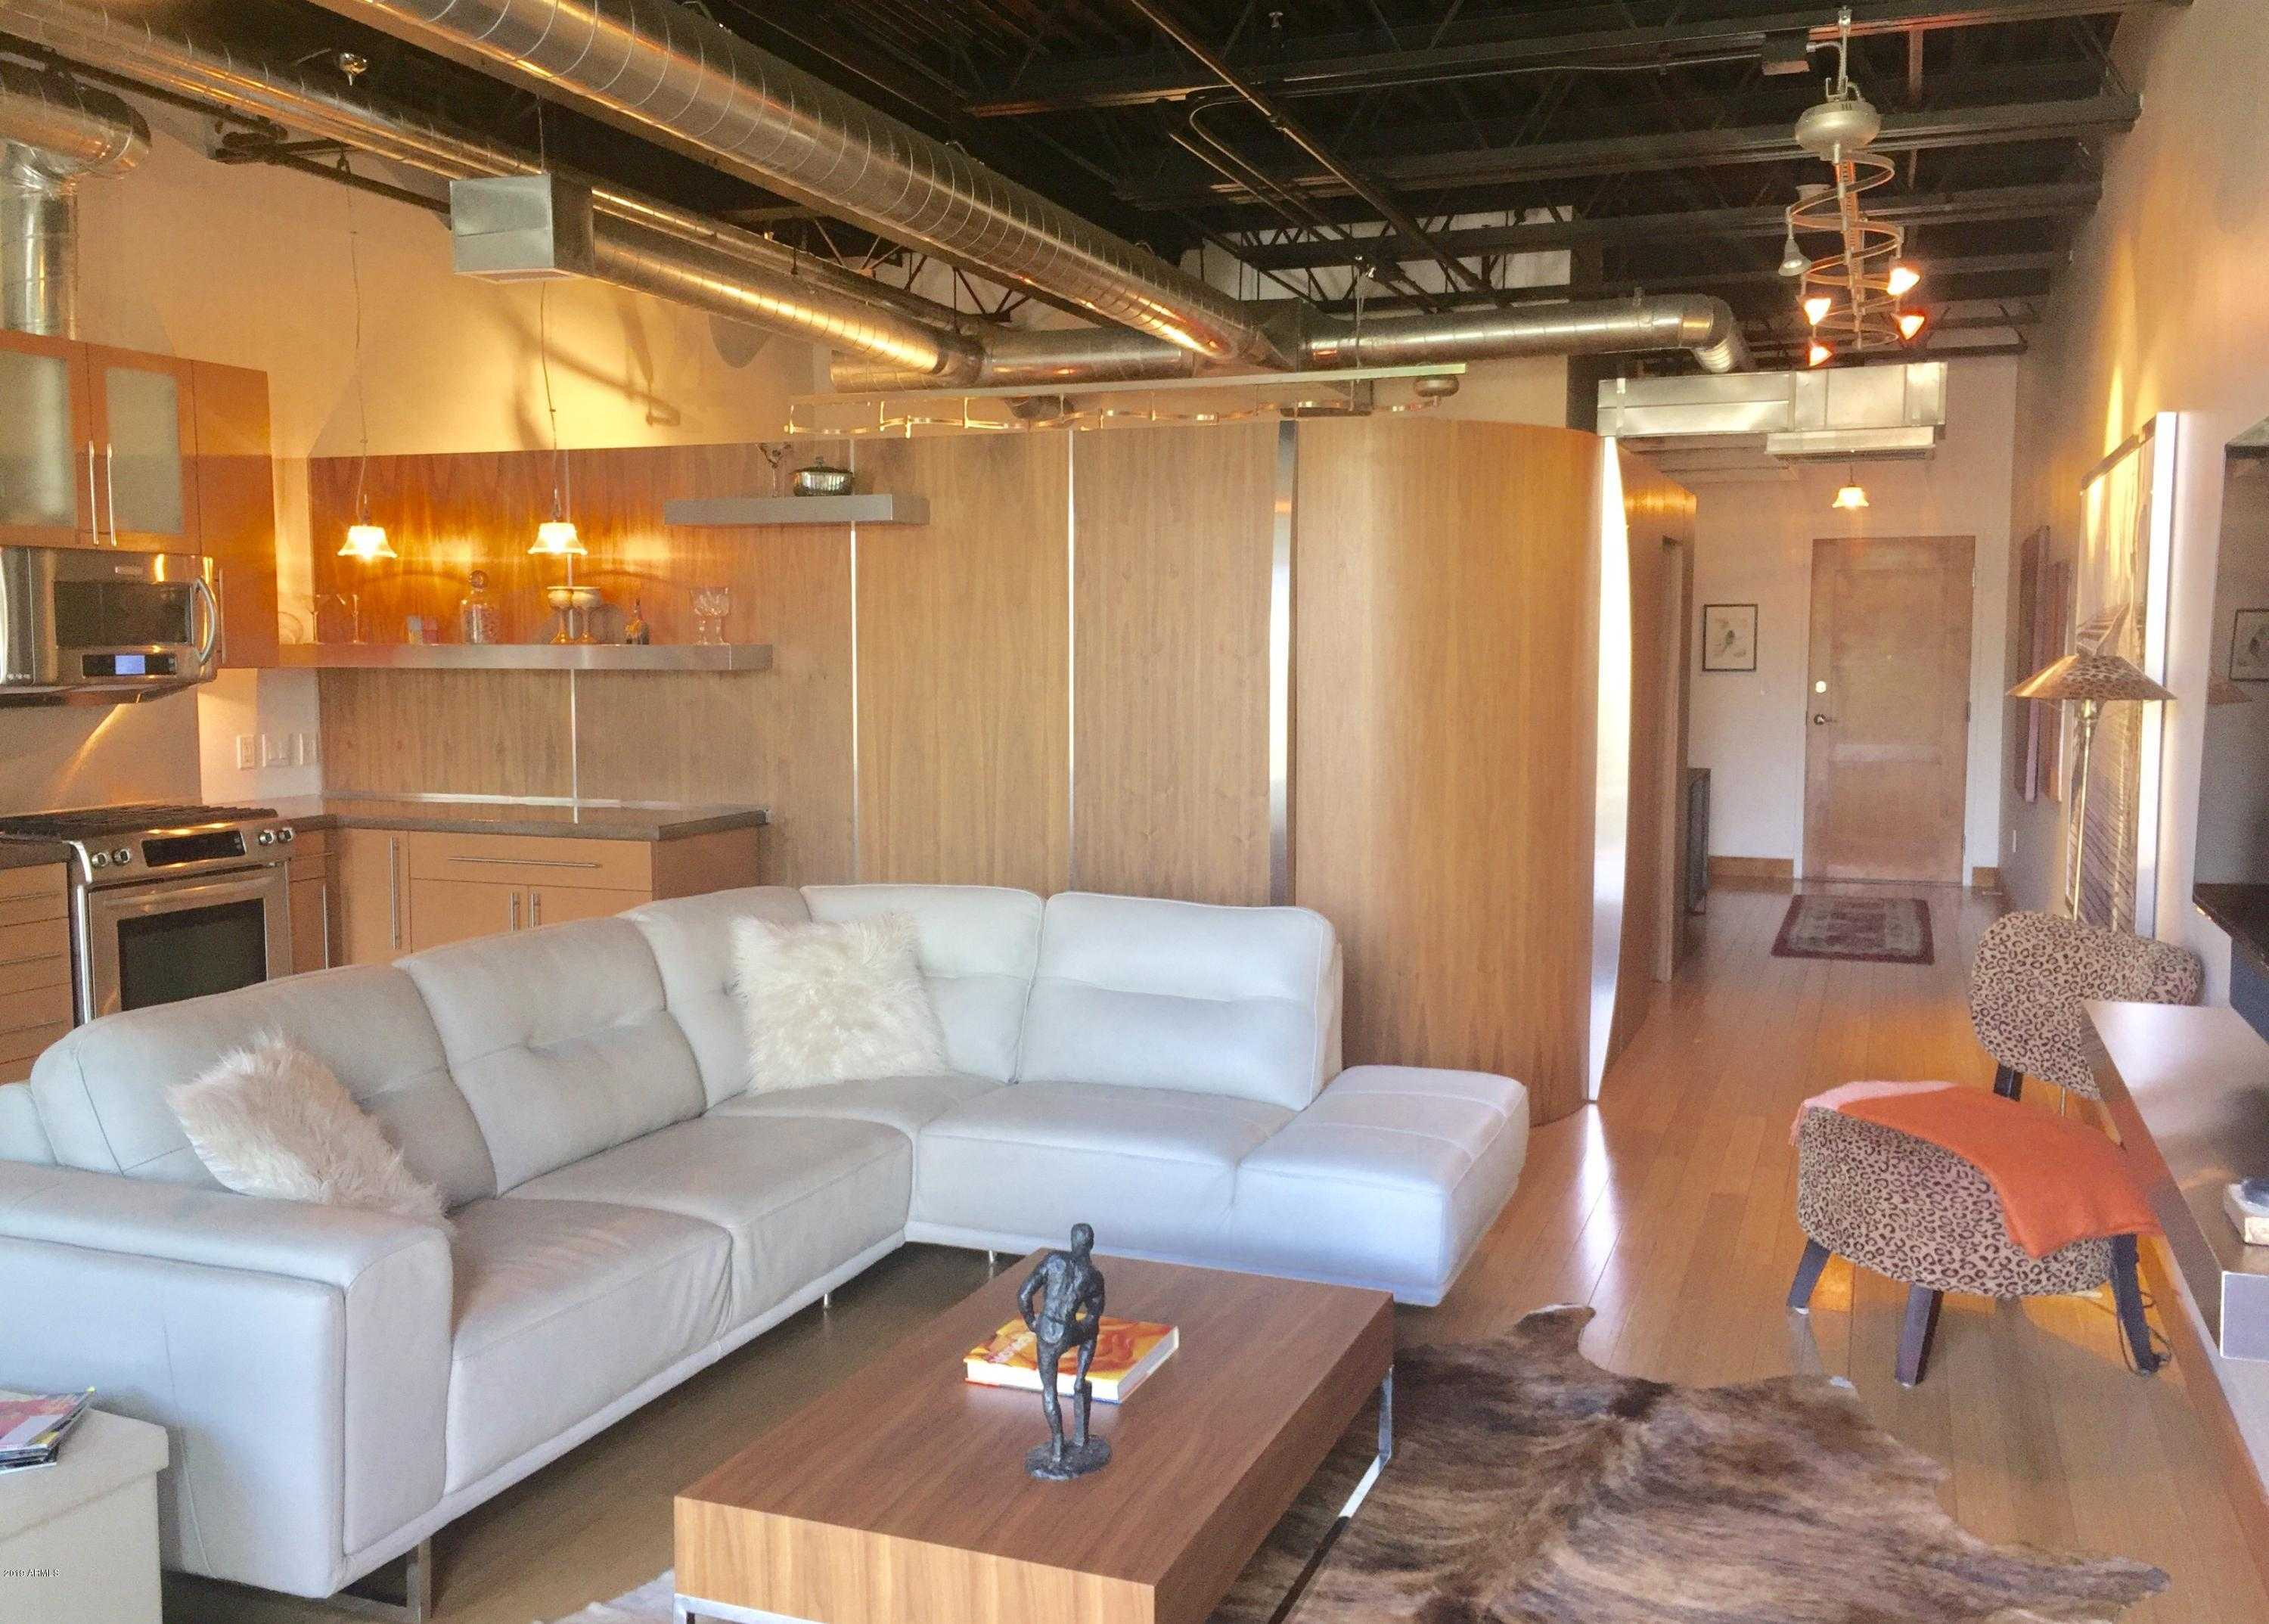 $372,267 - 1Br/1Ba -  for Sale in 4020 Lofts, Scottsdale